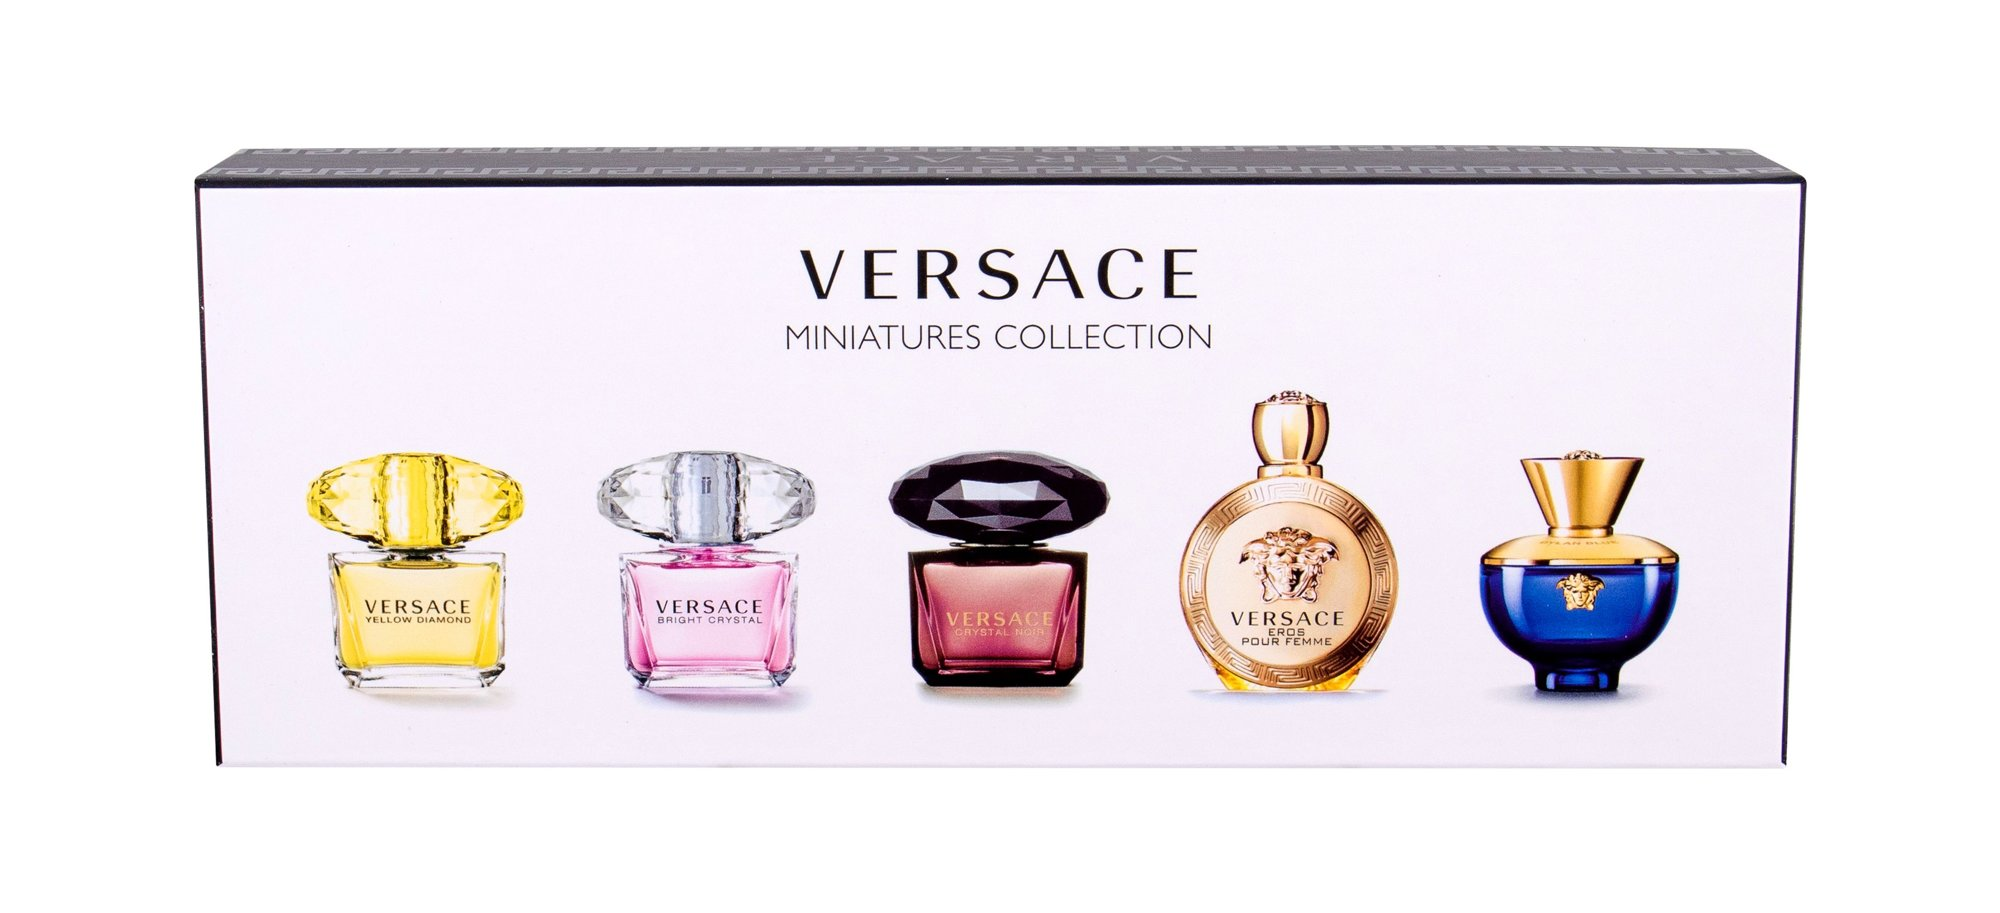 Versace Mini Set 3 Eau de Toilette 5 x 5ml